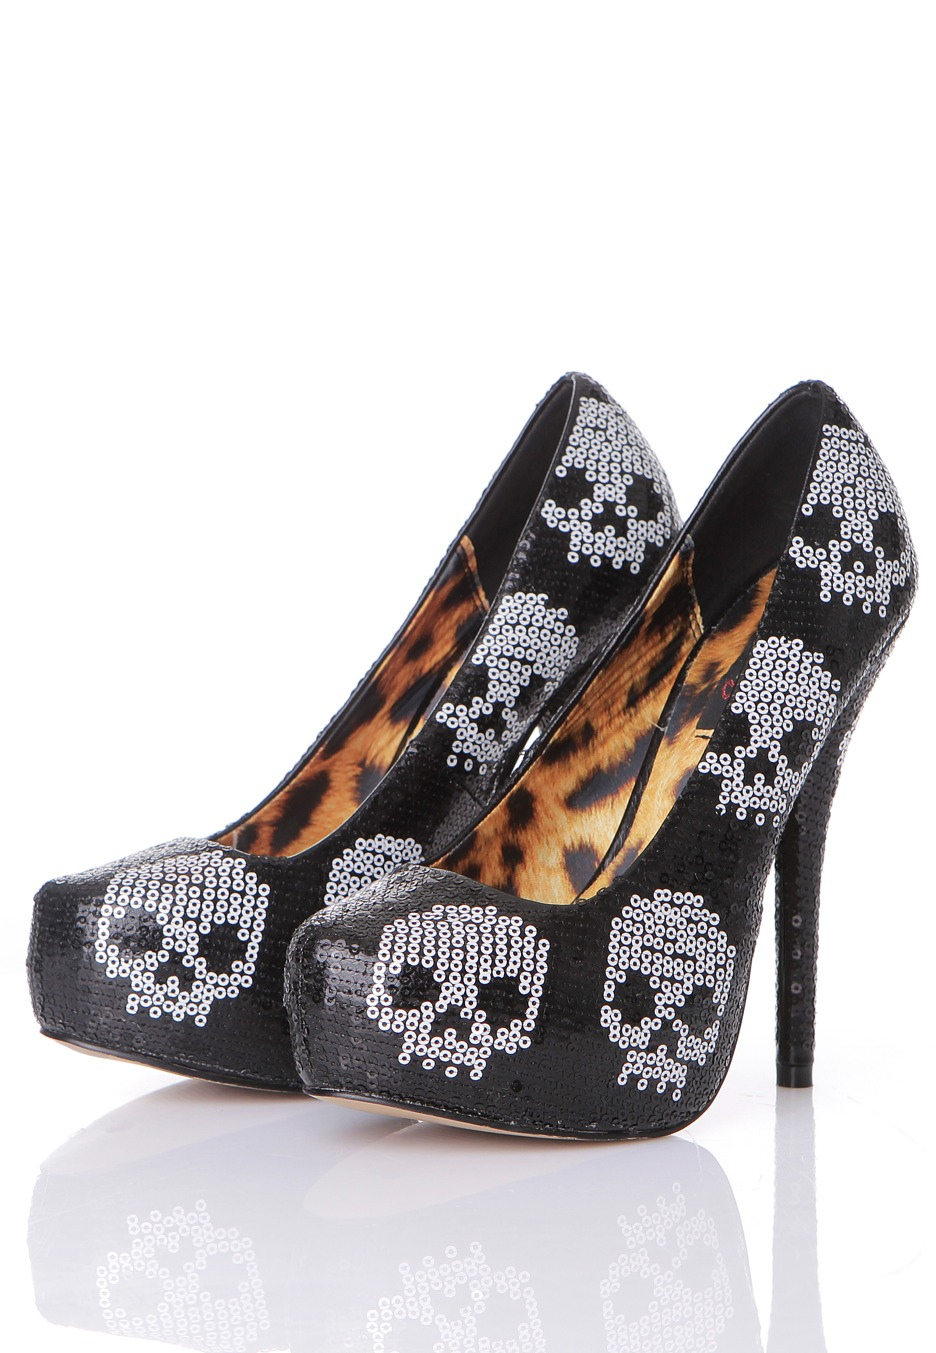 Black iron fist heels